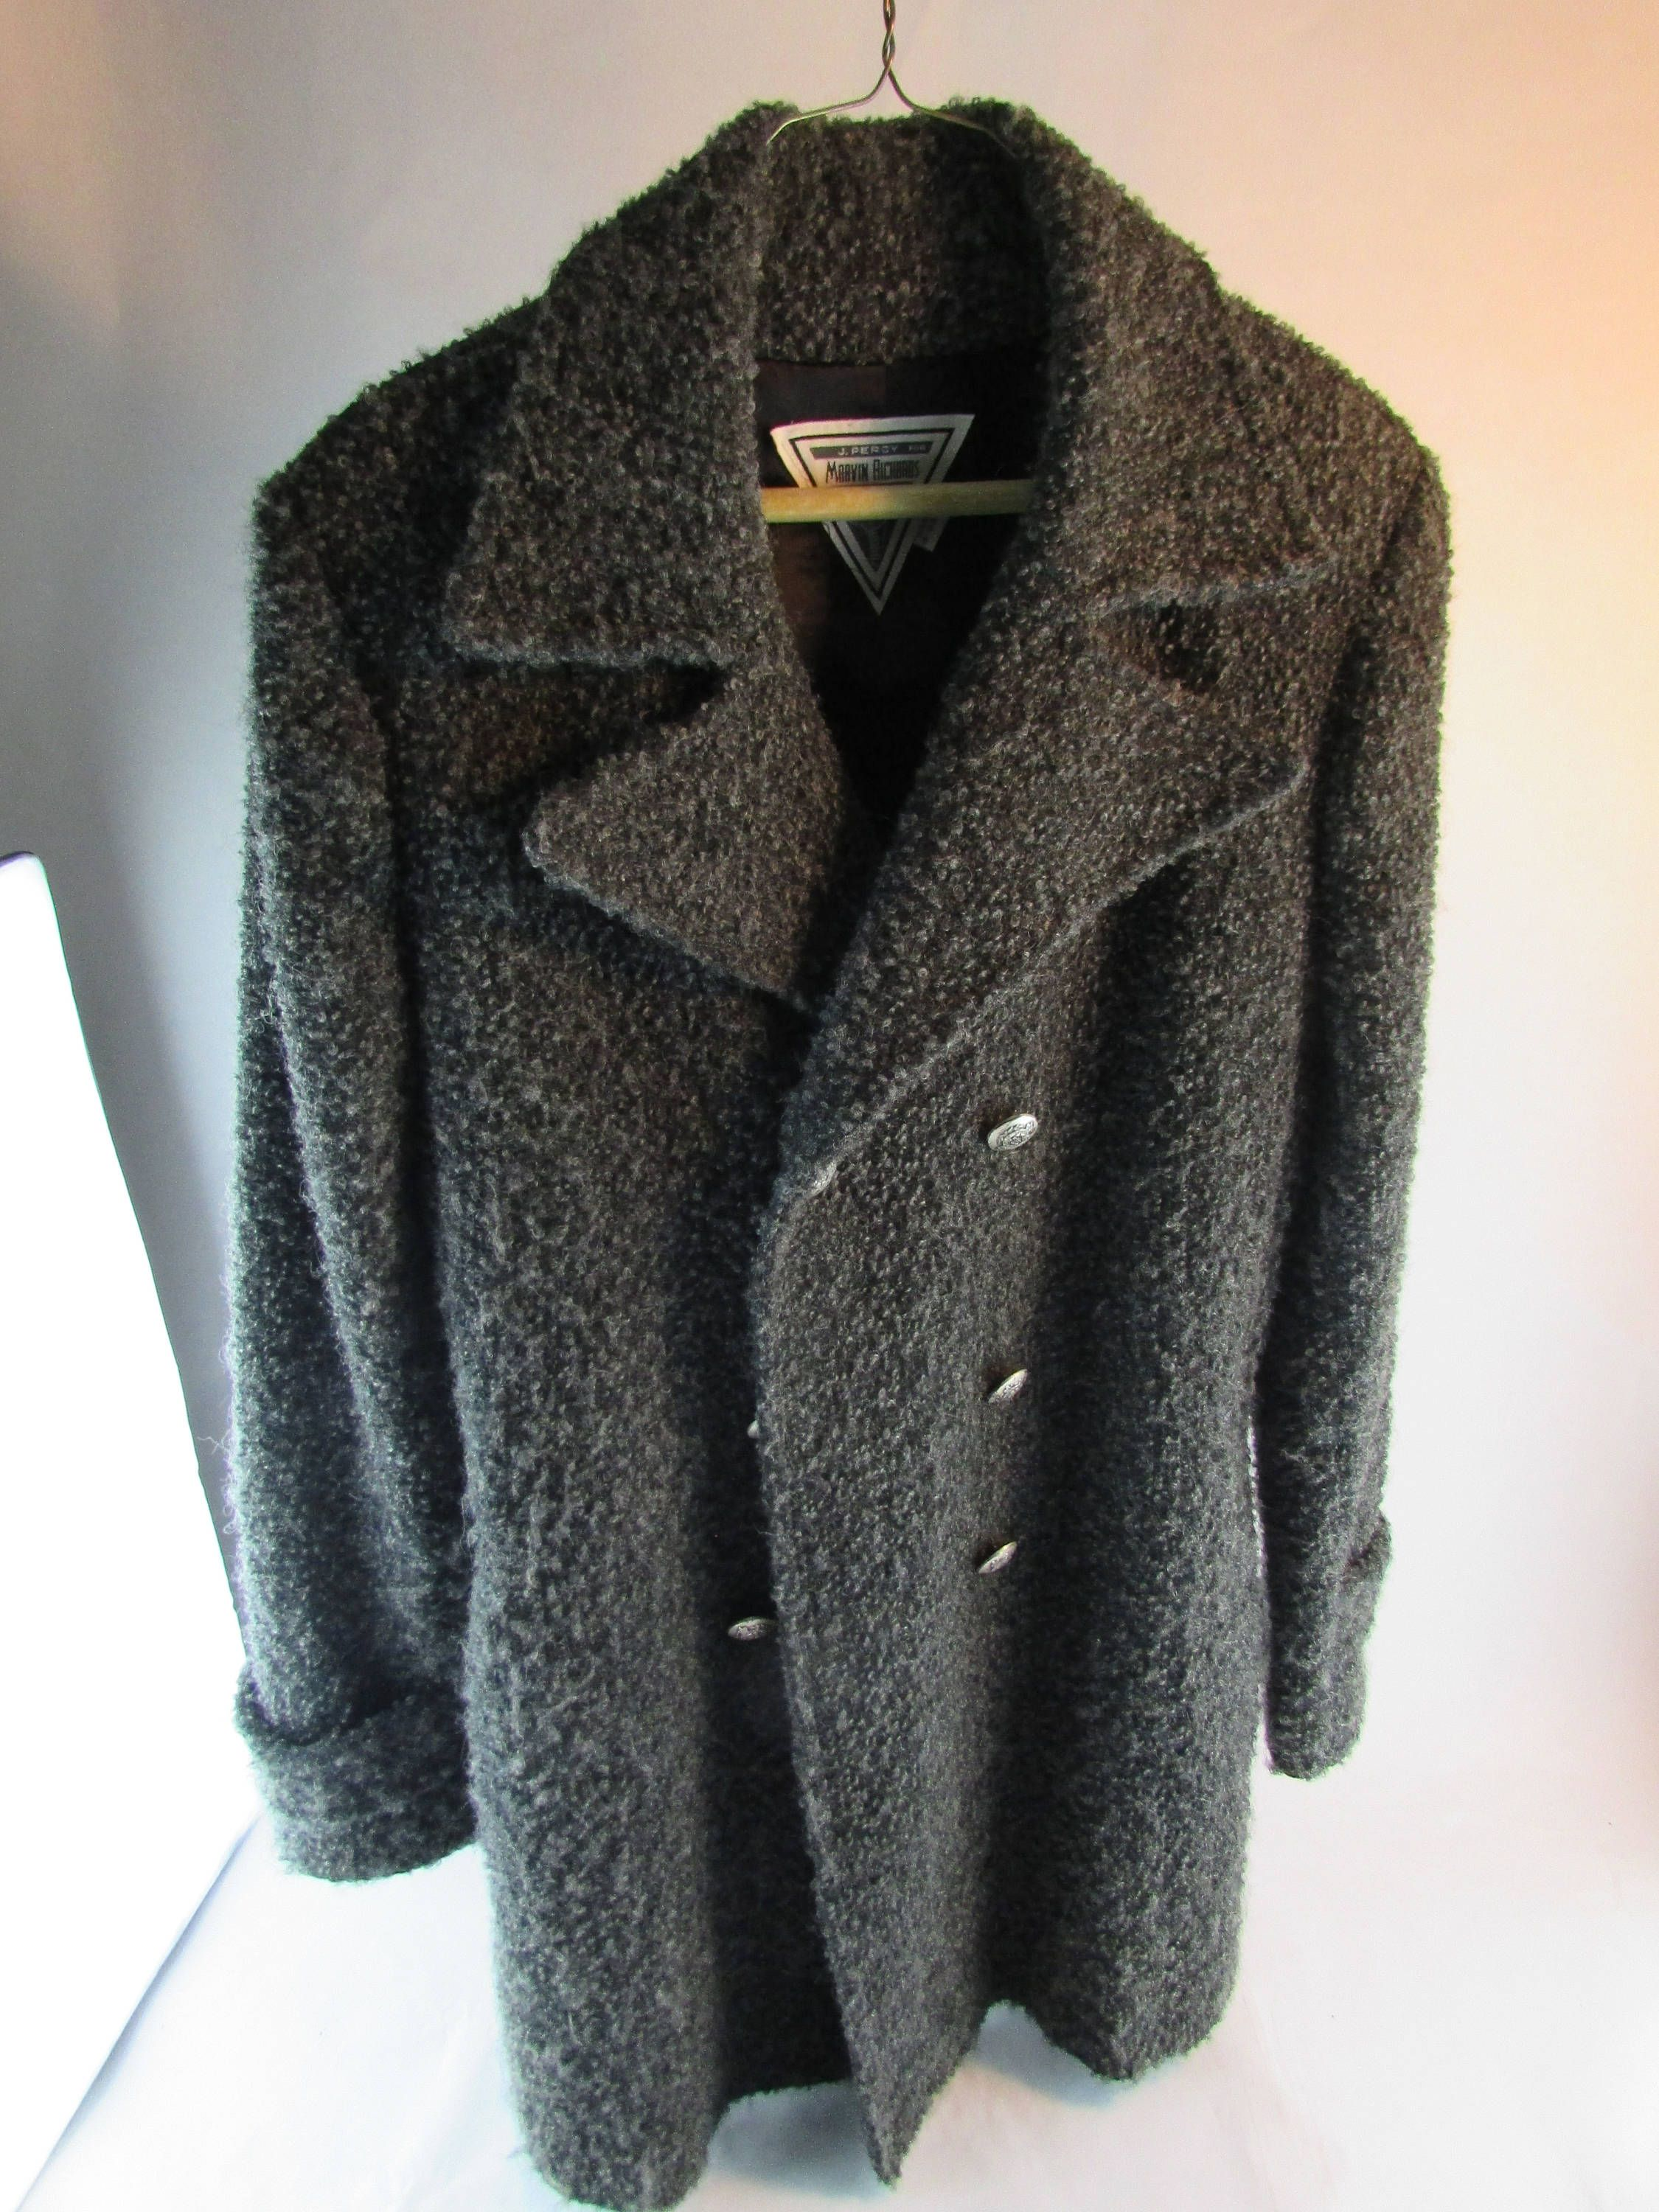 0c858a416bac Women s Wool Double Breasted Peacoat Size 6 - Gray Fuzzy USA Made Vintage  J. Percy For Marvin Richards by Cosmokra on Etsy